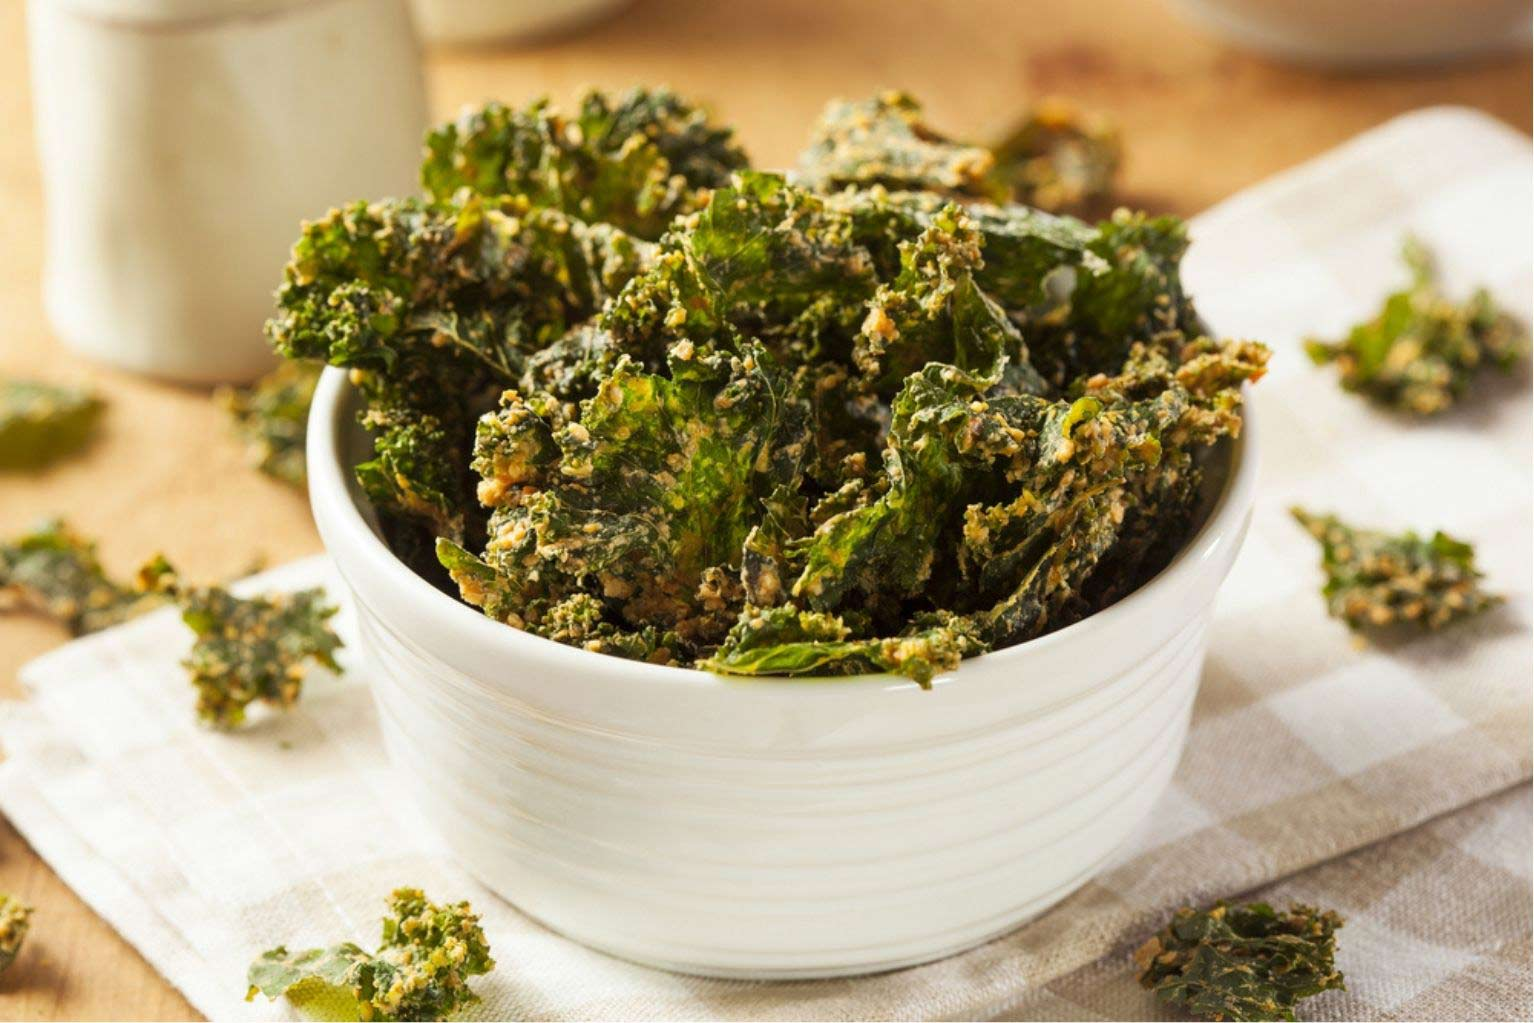 White ceramic cup full of kale chips seasoned with vegan cheese and seasoning.